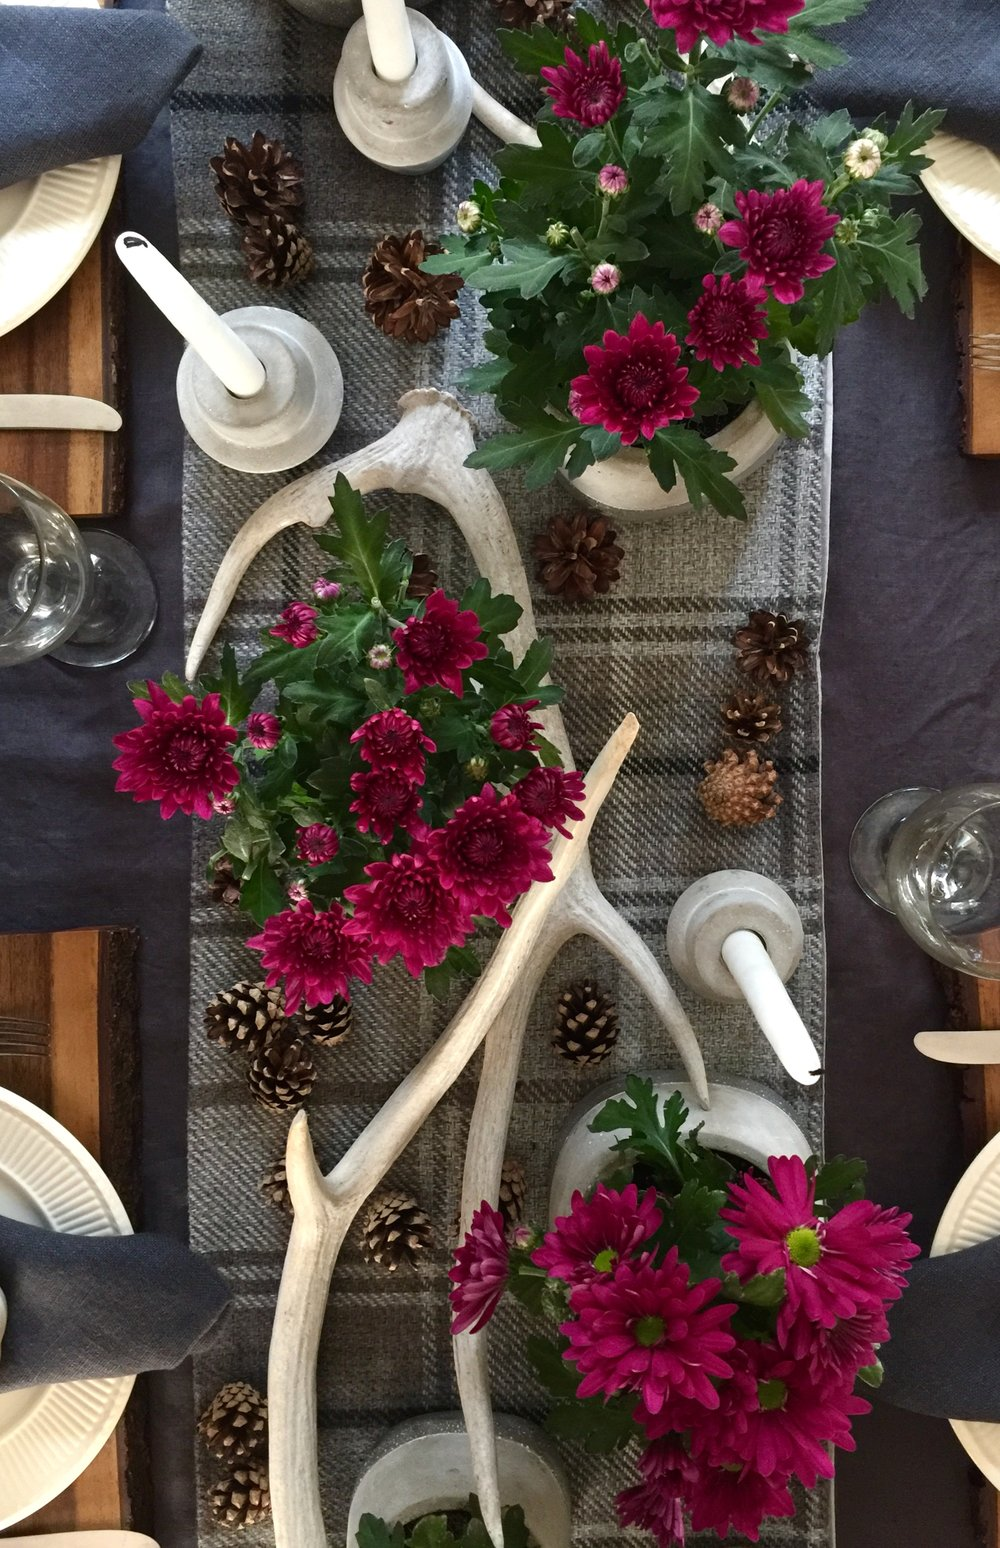 Tablesetting centerpiece with gray and magenta #antlers #pumpkins #plaid #tablesetting #centerpiece